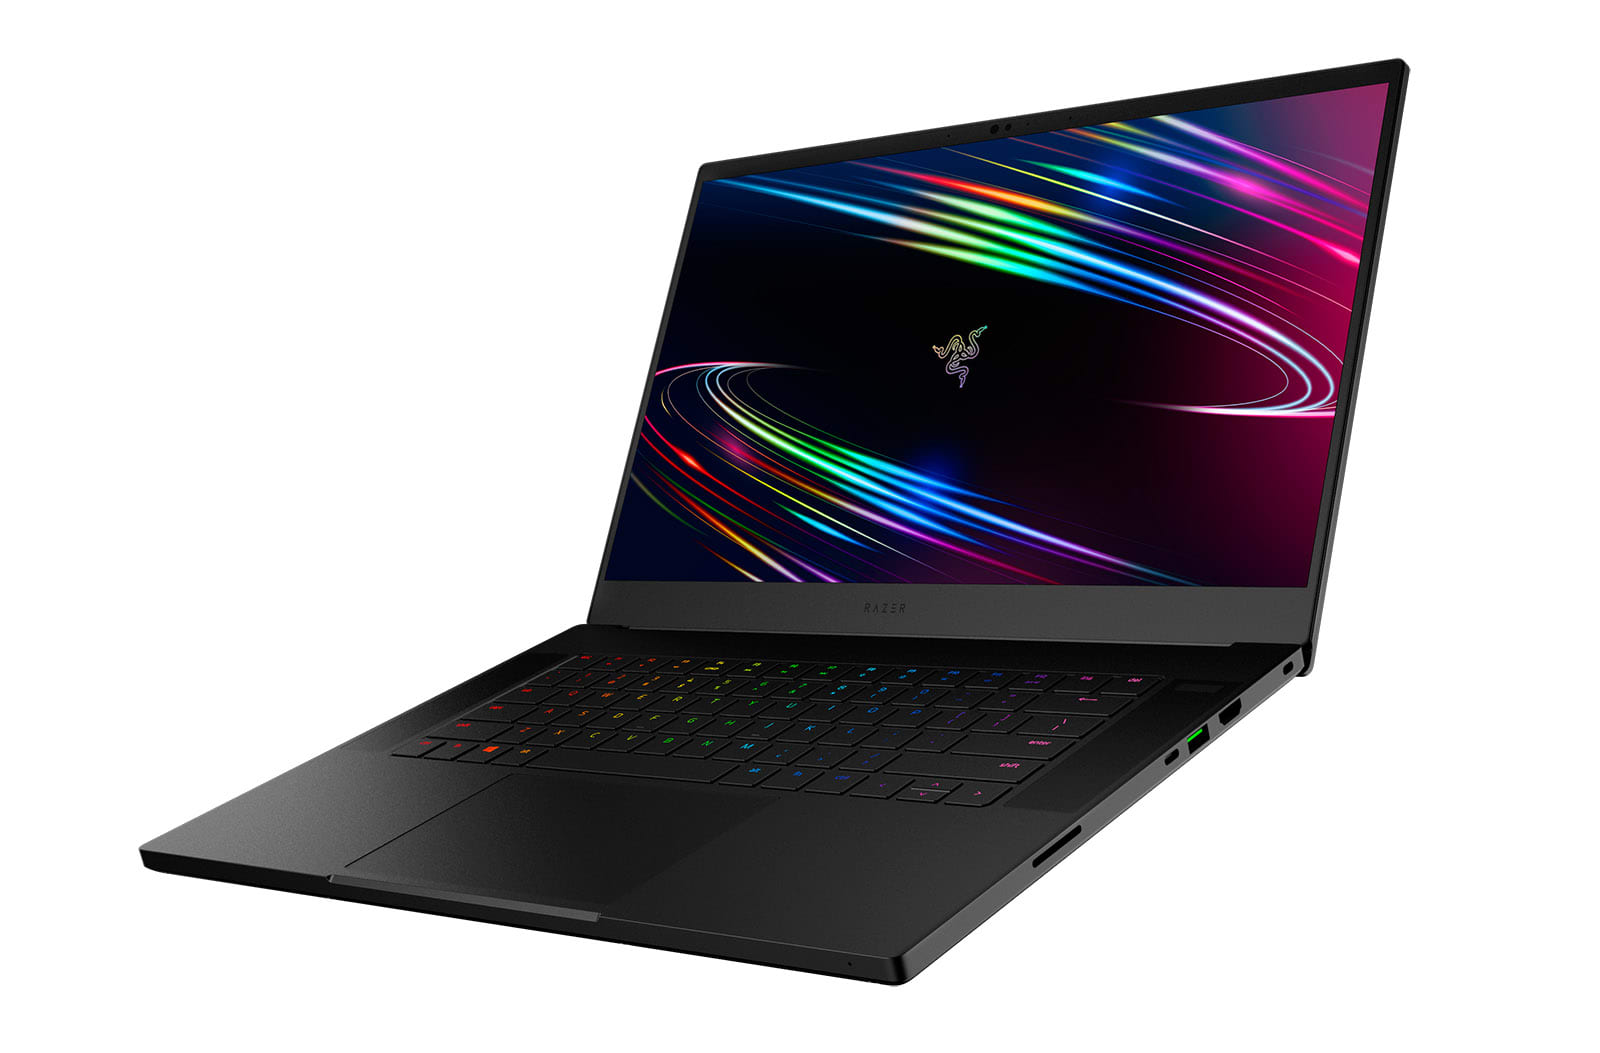 Razer Blade 15 Advanced laptop